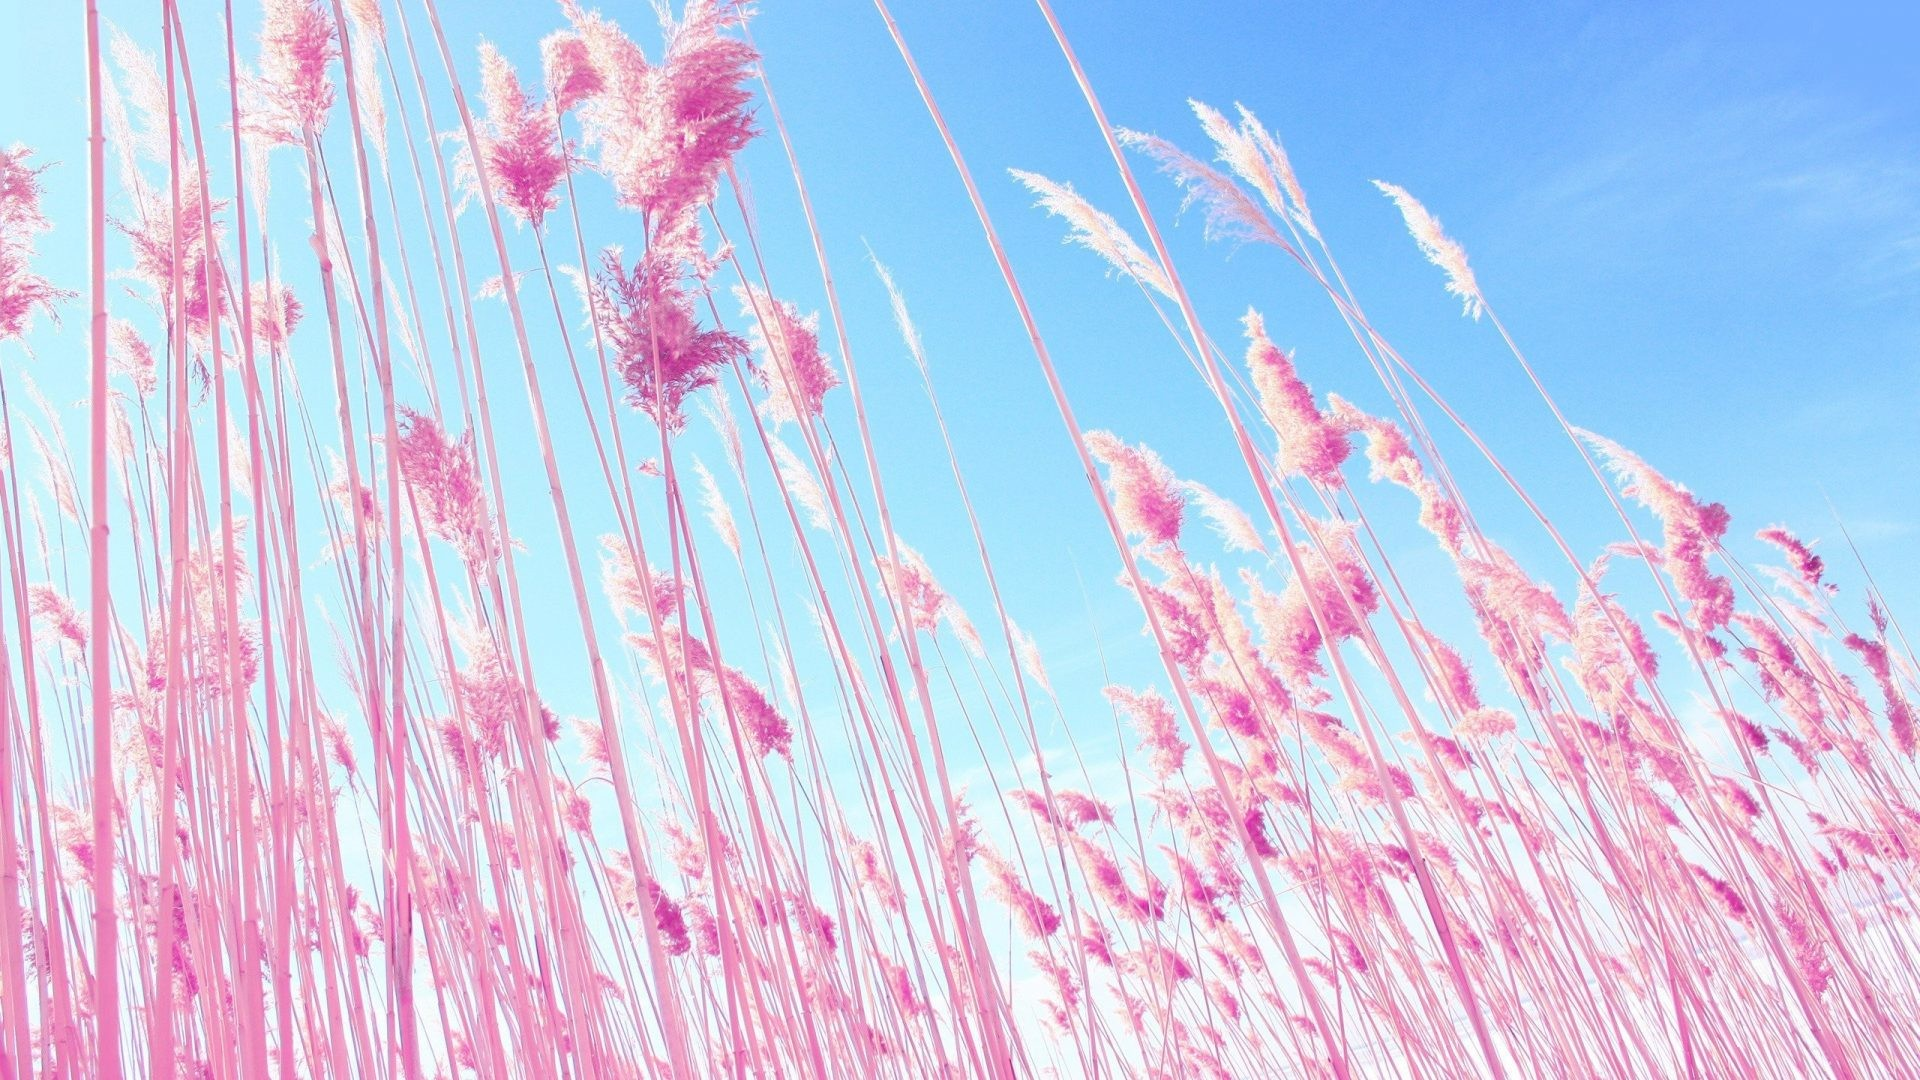 1920x1080 Dreamy Tag - Dreamy Macro Nature Plants Grass Pink Hd Wallpapers 1080p  Widescreen Download for HD